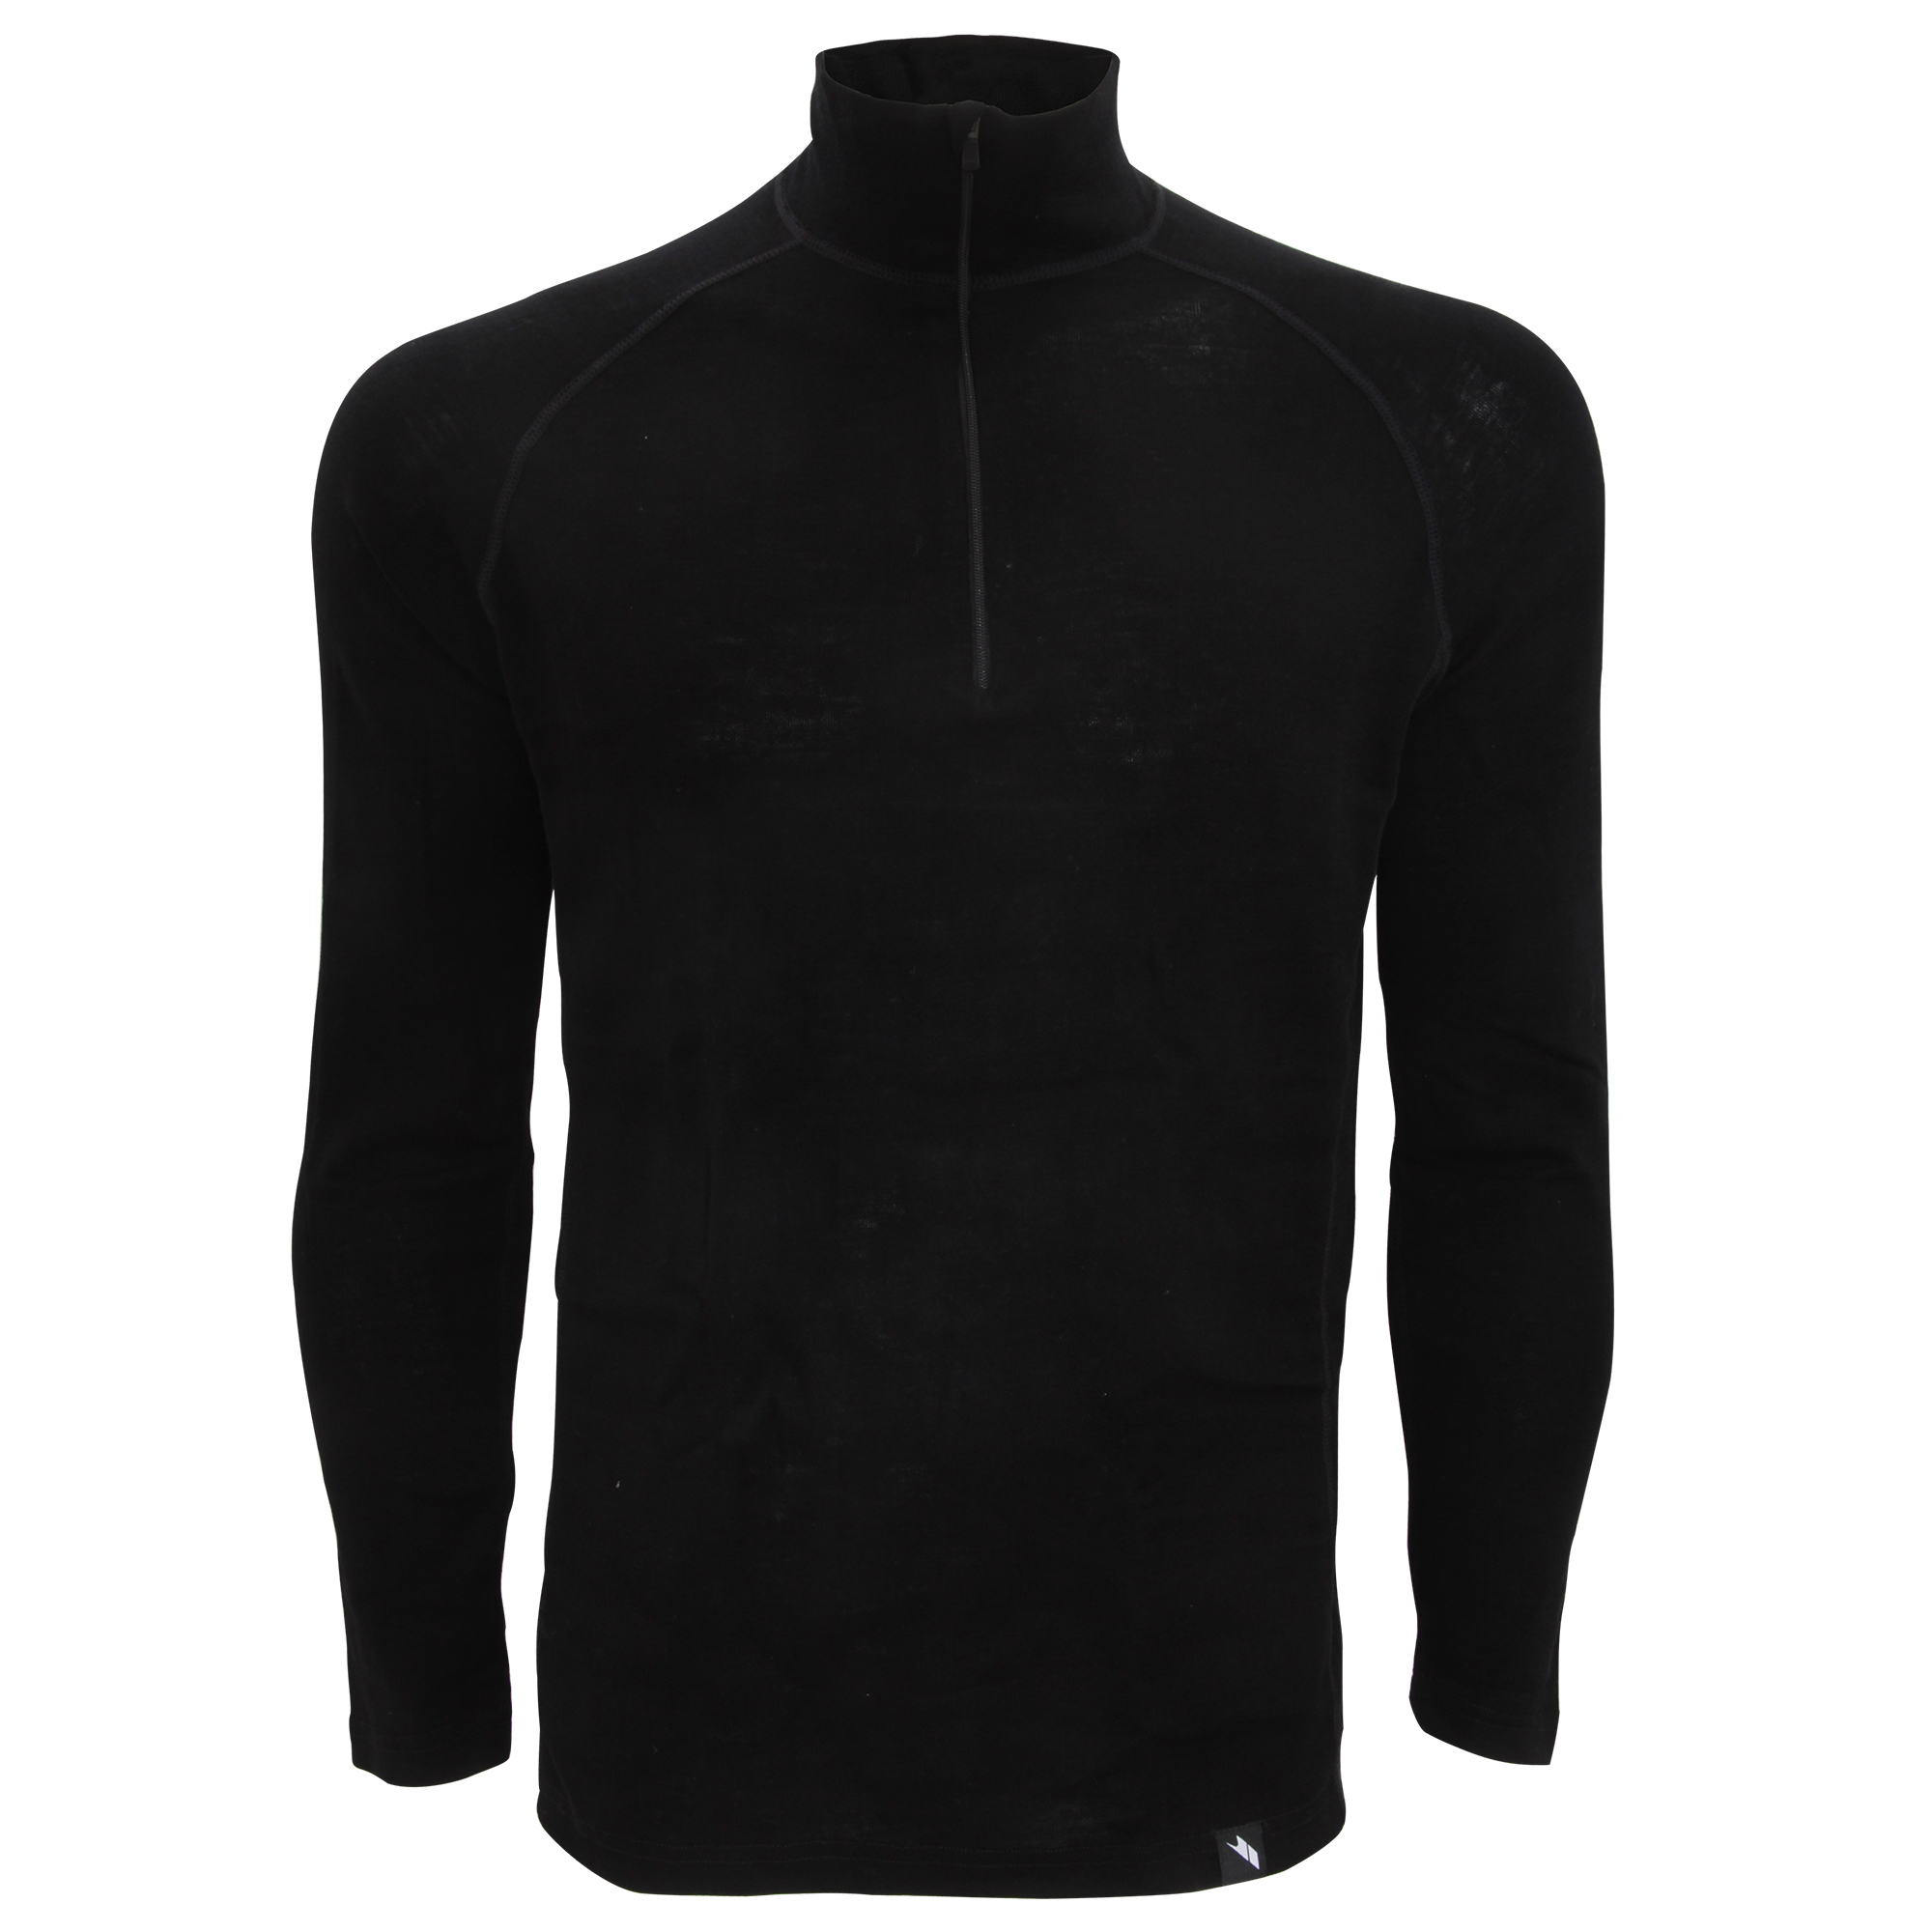 Awdis Just Cool Mens Cowl Neck Long Sleeve Baselayer Top Pack of 2